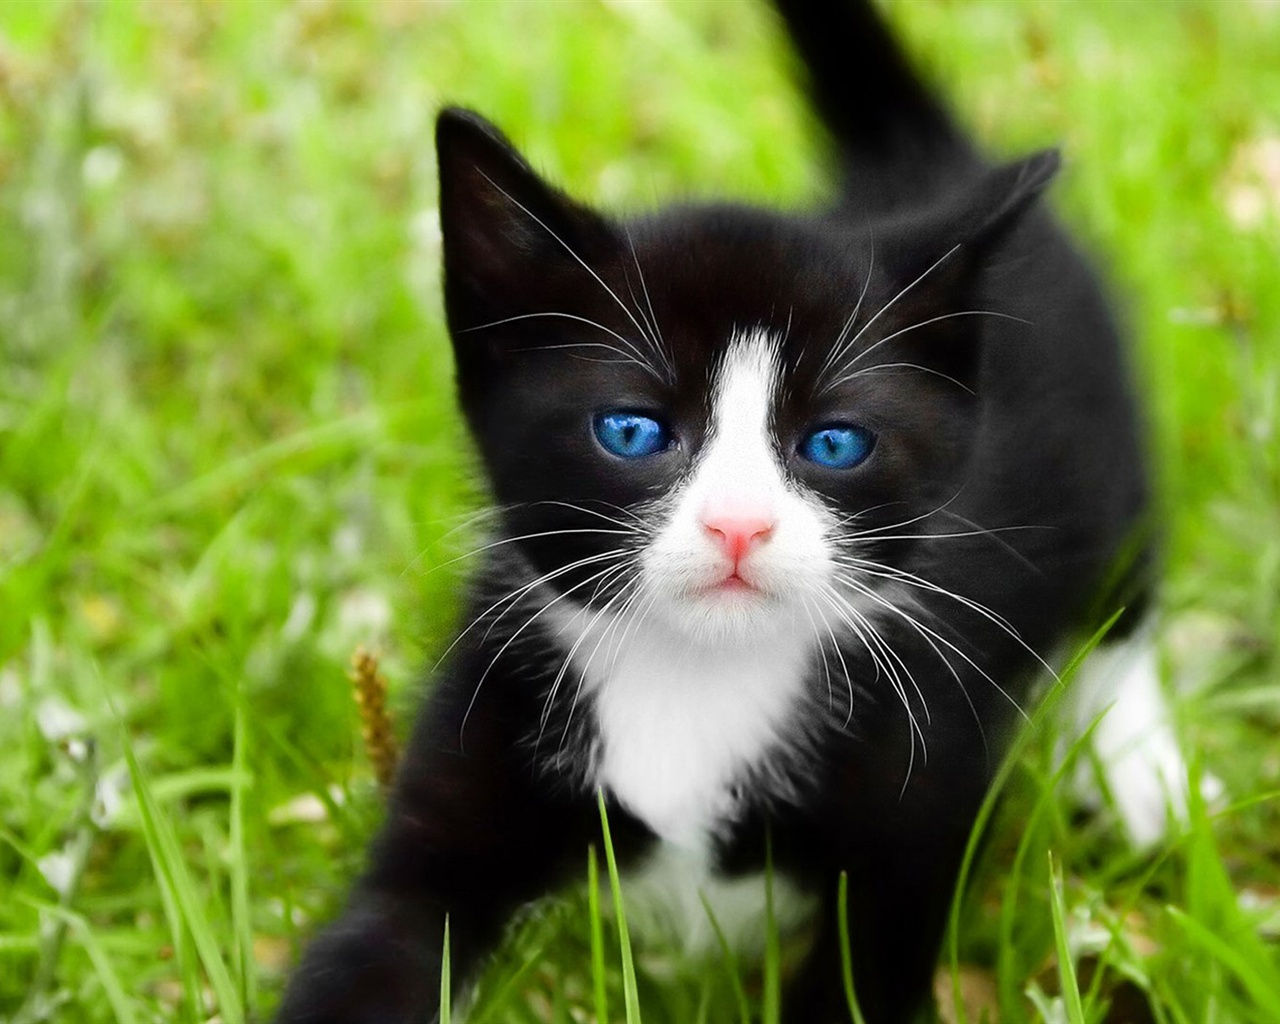 Wallpaper Black Cat Blue Eyes 1920x1200 Hd Picture Image